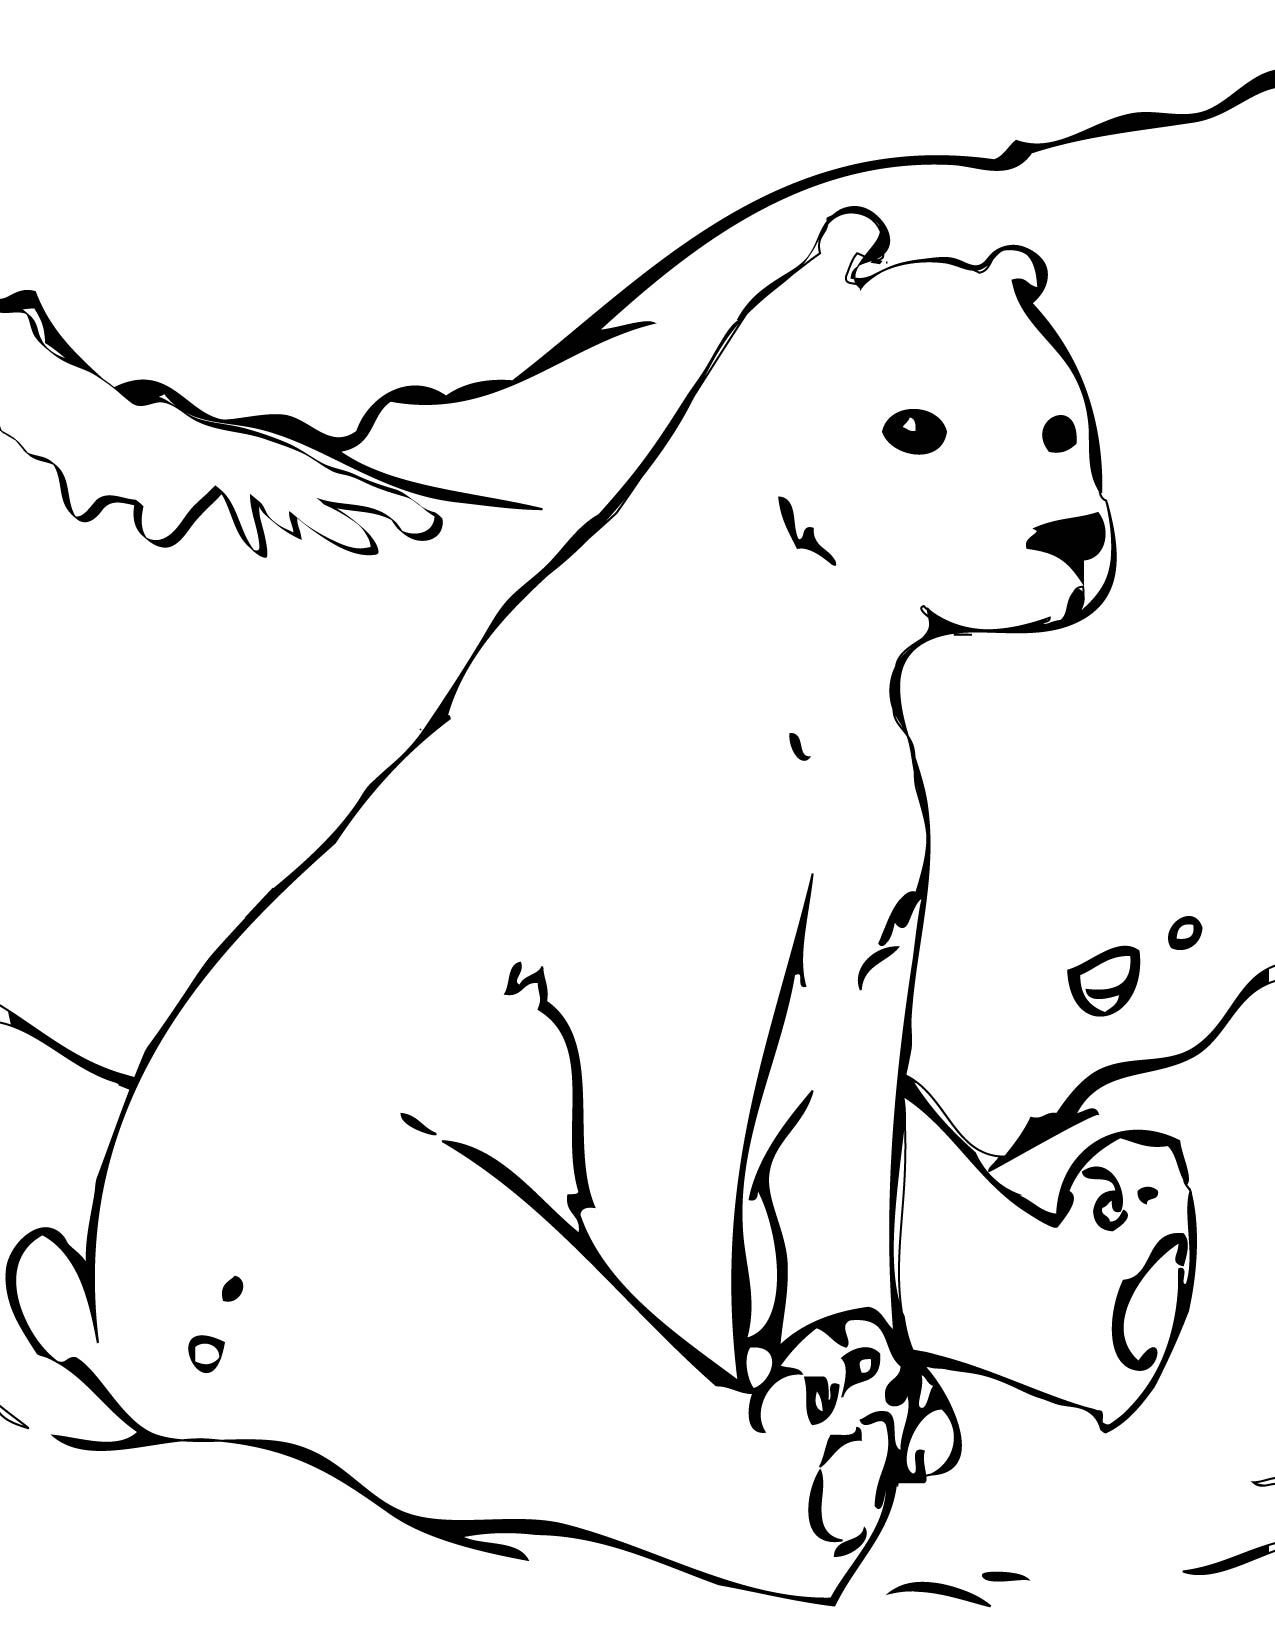 polar bear coloring page bit of a dog s head but the shape of the